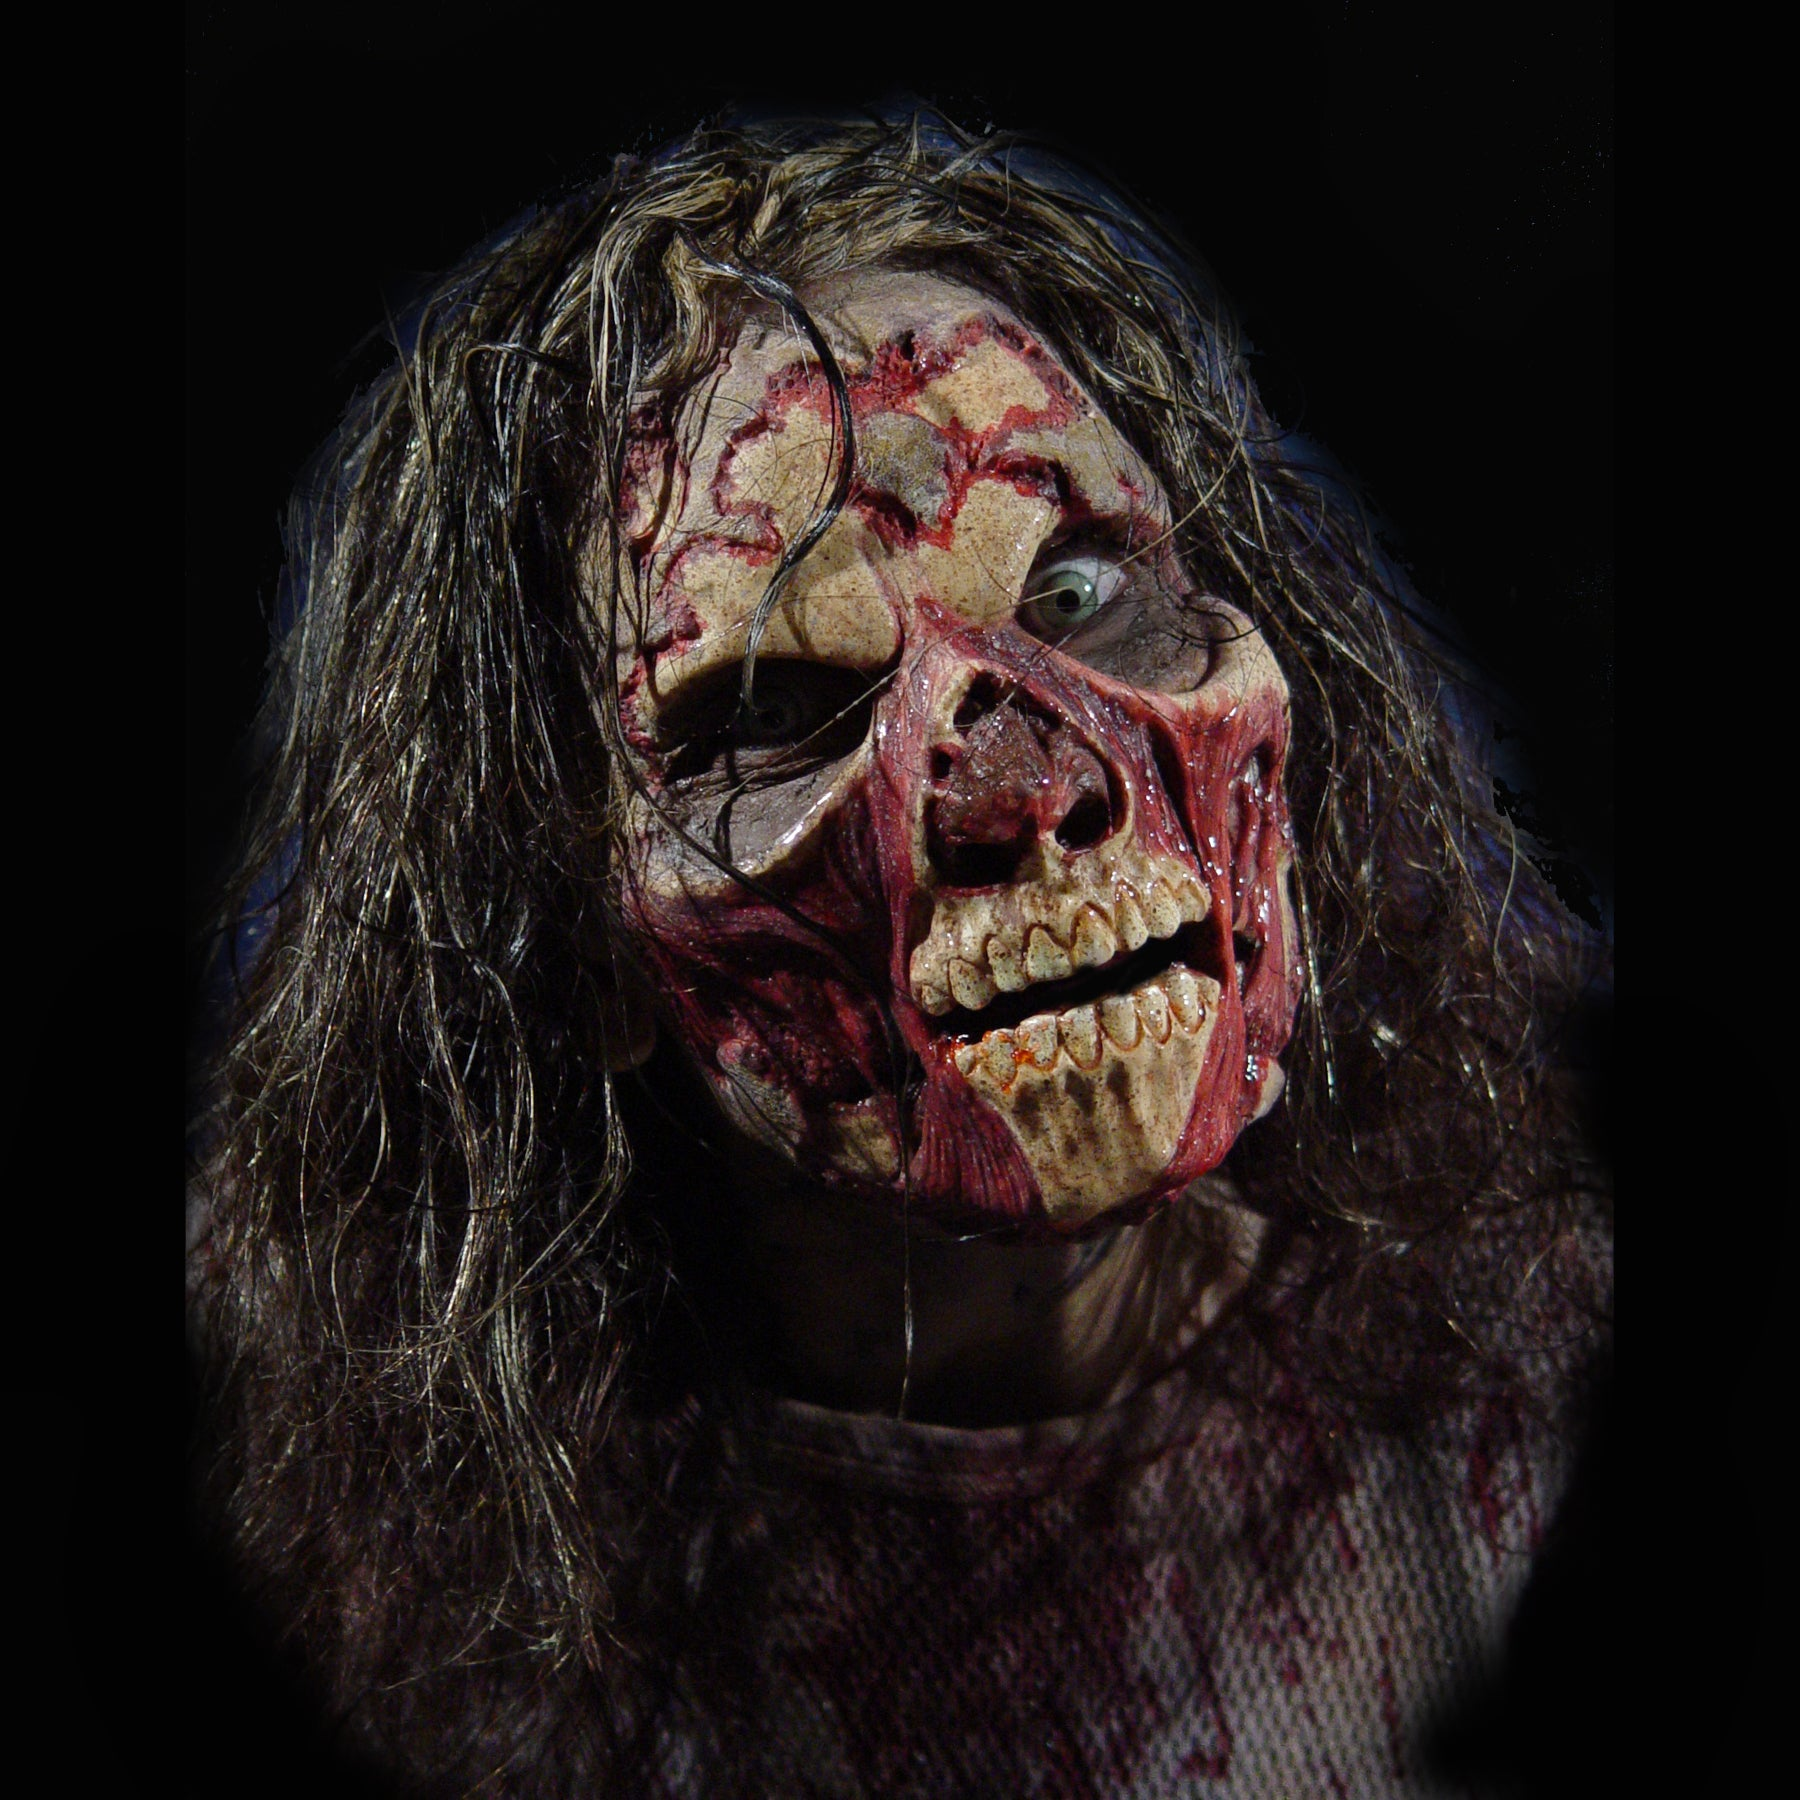 zombie, zombie mask, zombie decayed, fx faces, prosthetic